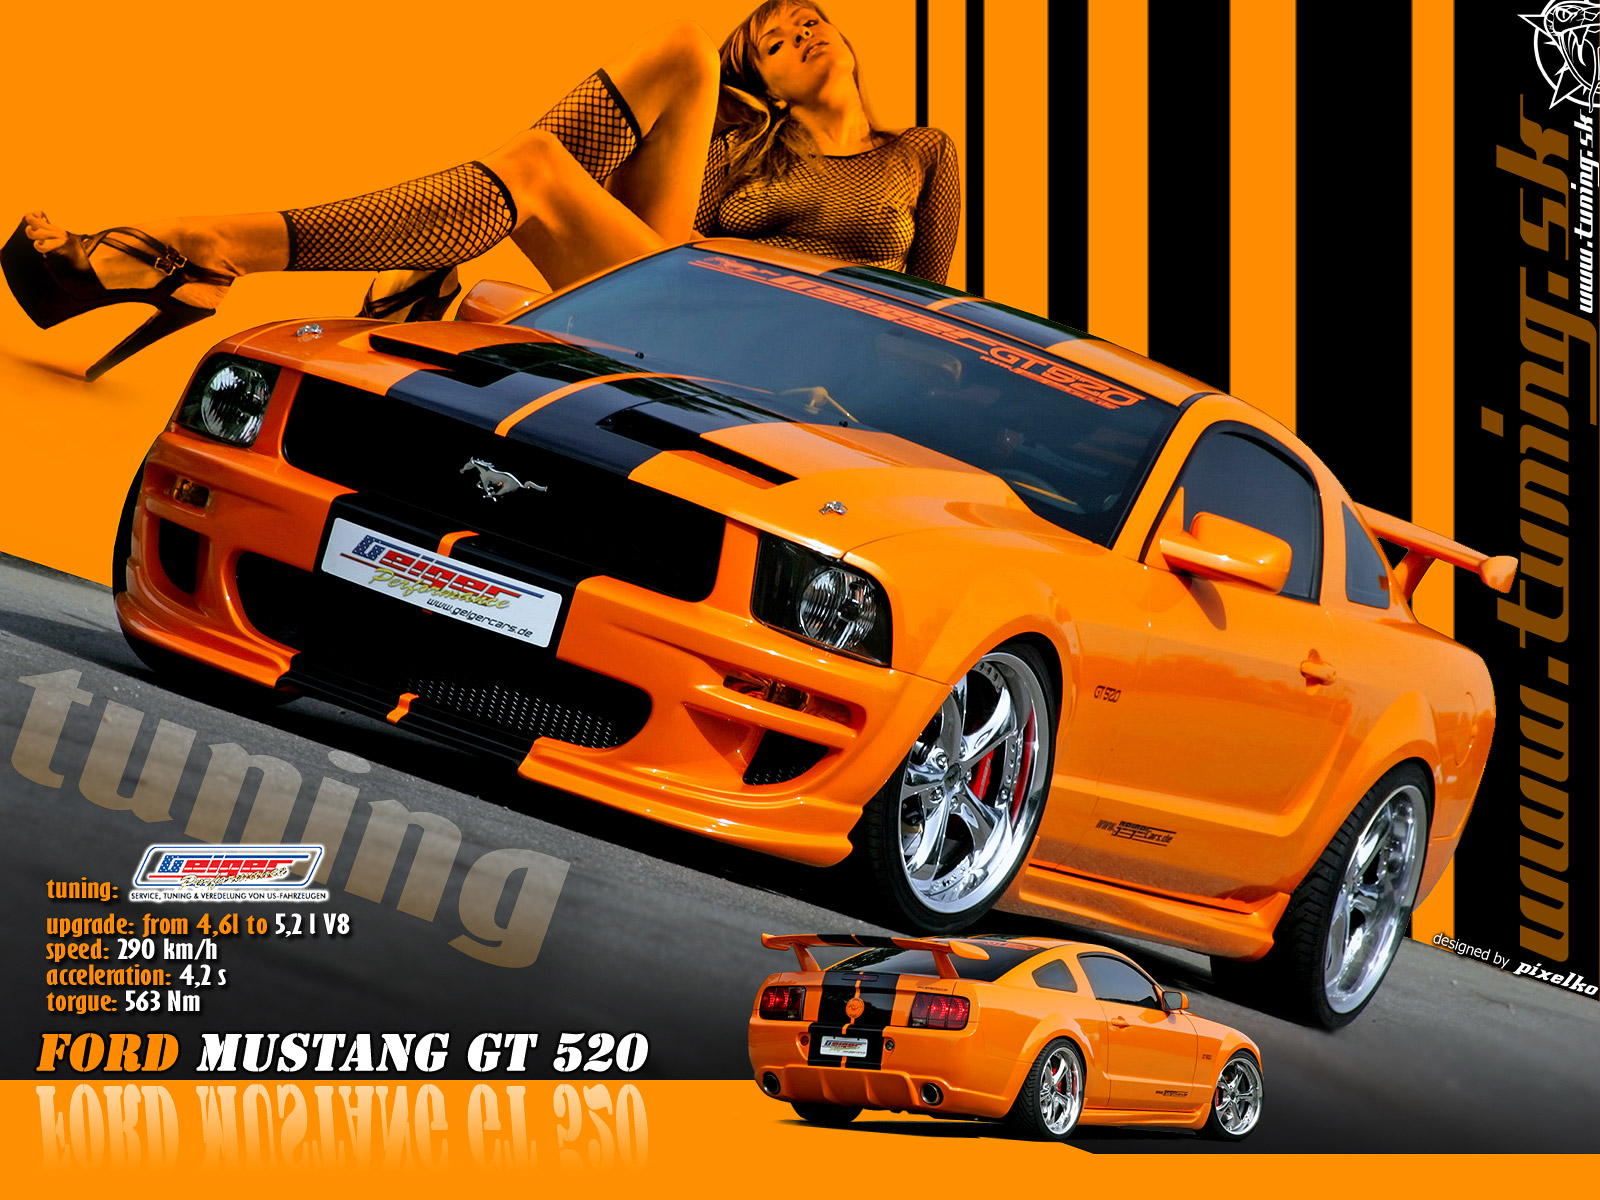 mustang gt-520 sport cars wallpaper